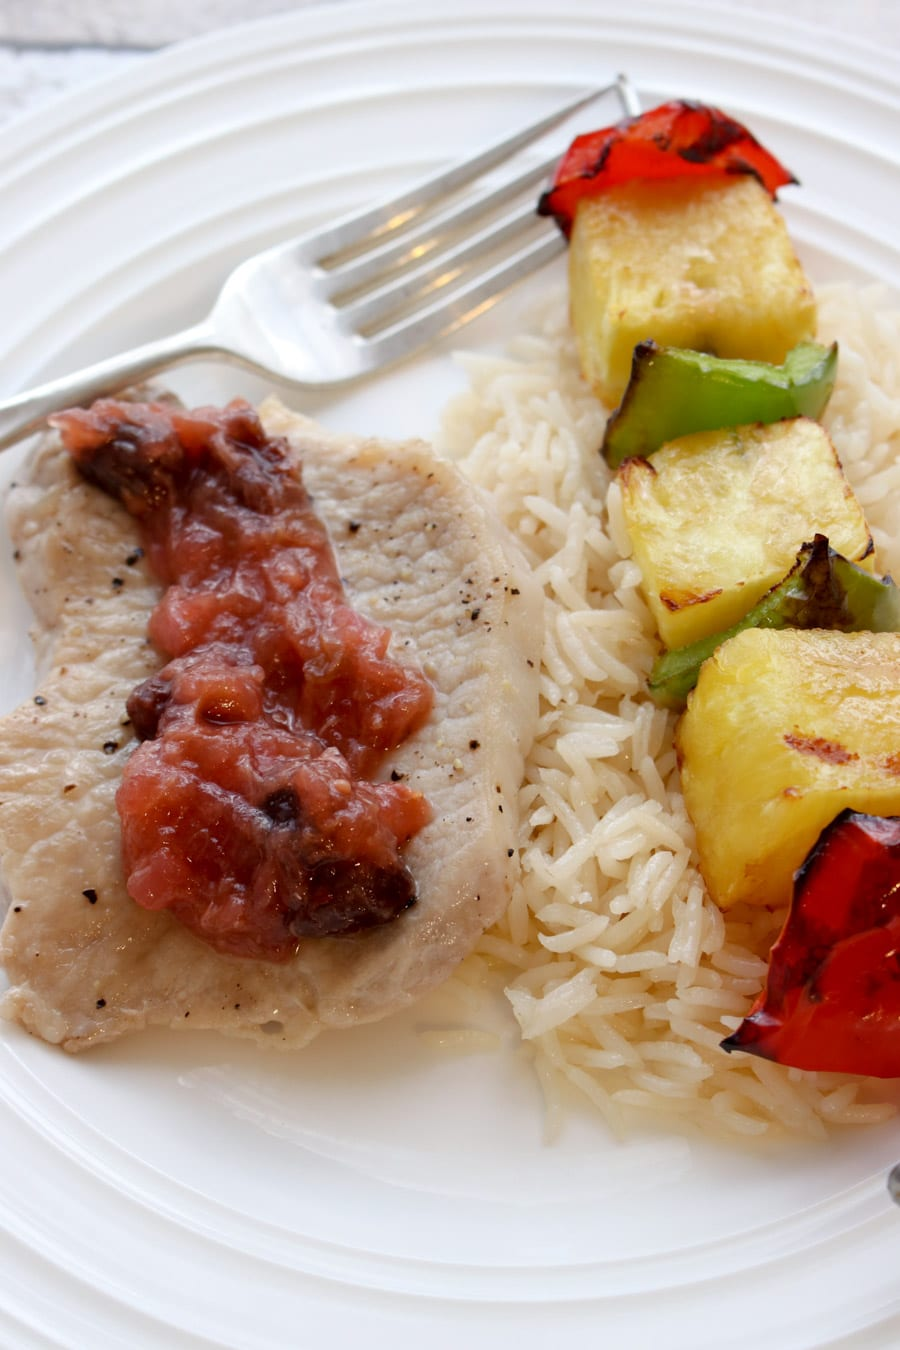 Pork chop topped with chutney. Rice and fruit kabob on the side.